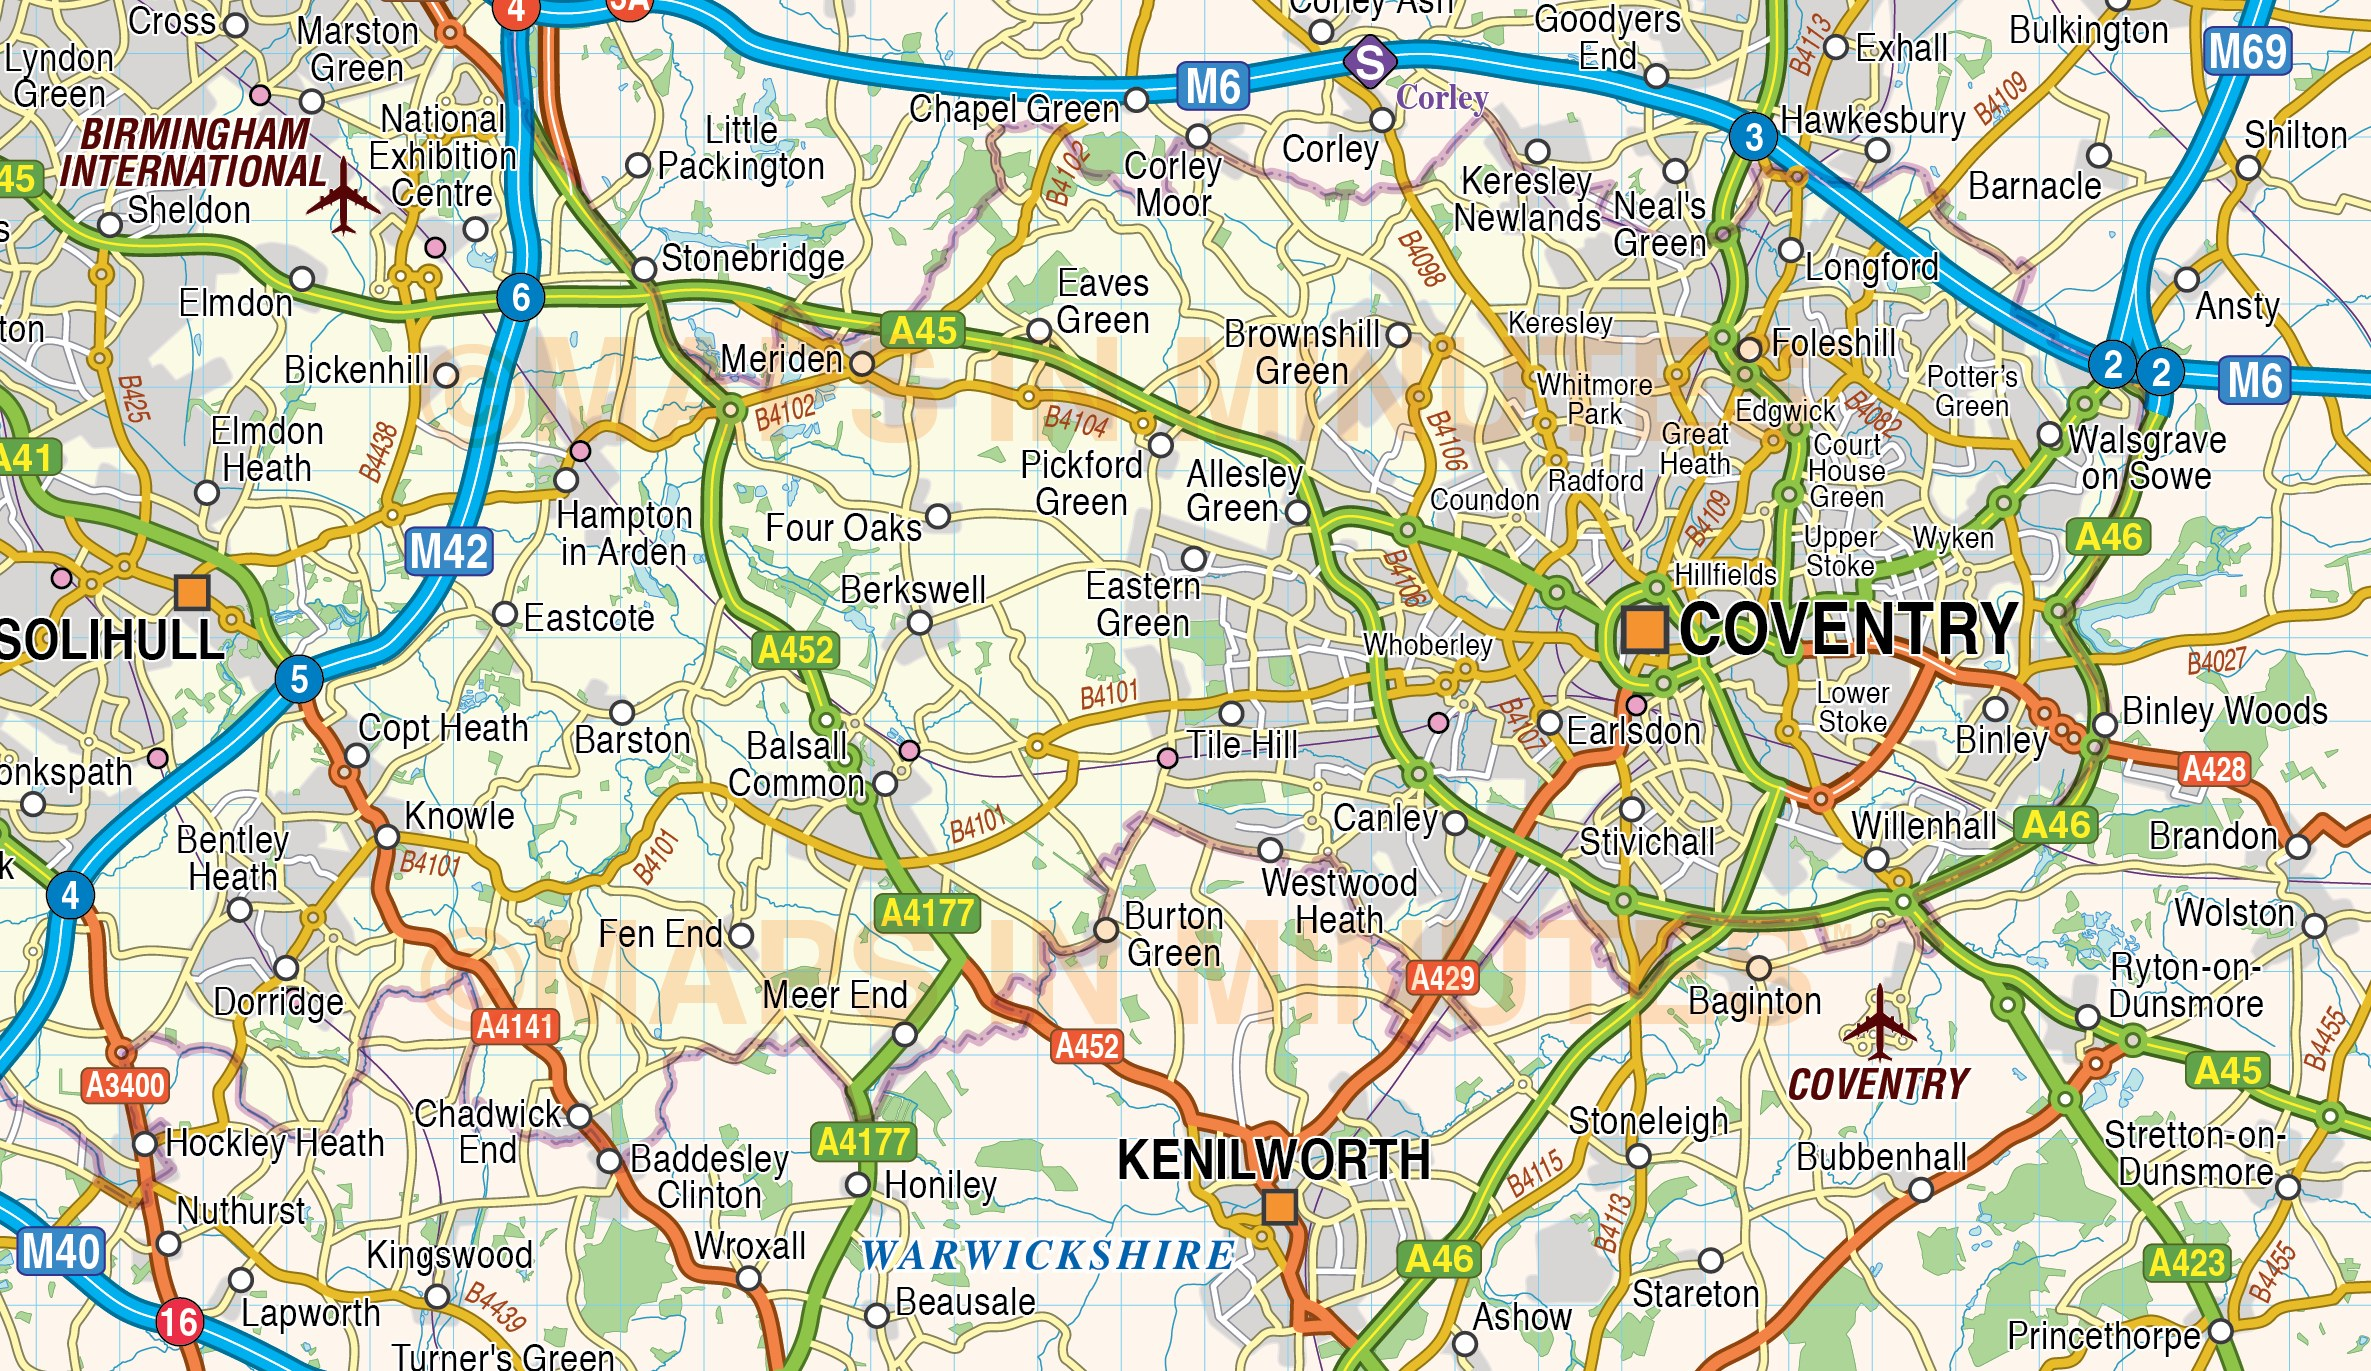 Map Of England Birmingham.Digital Vector Map Of Greater Birmingham Coventry 250k Scale In